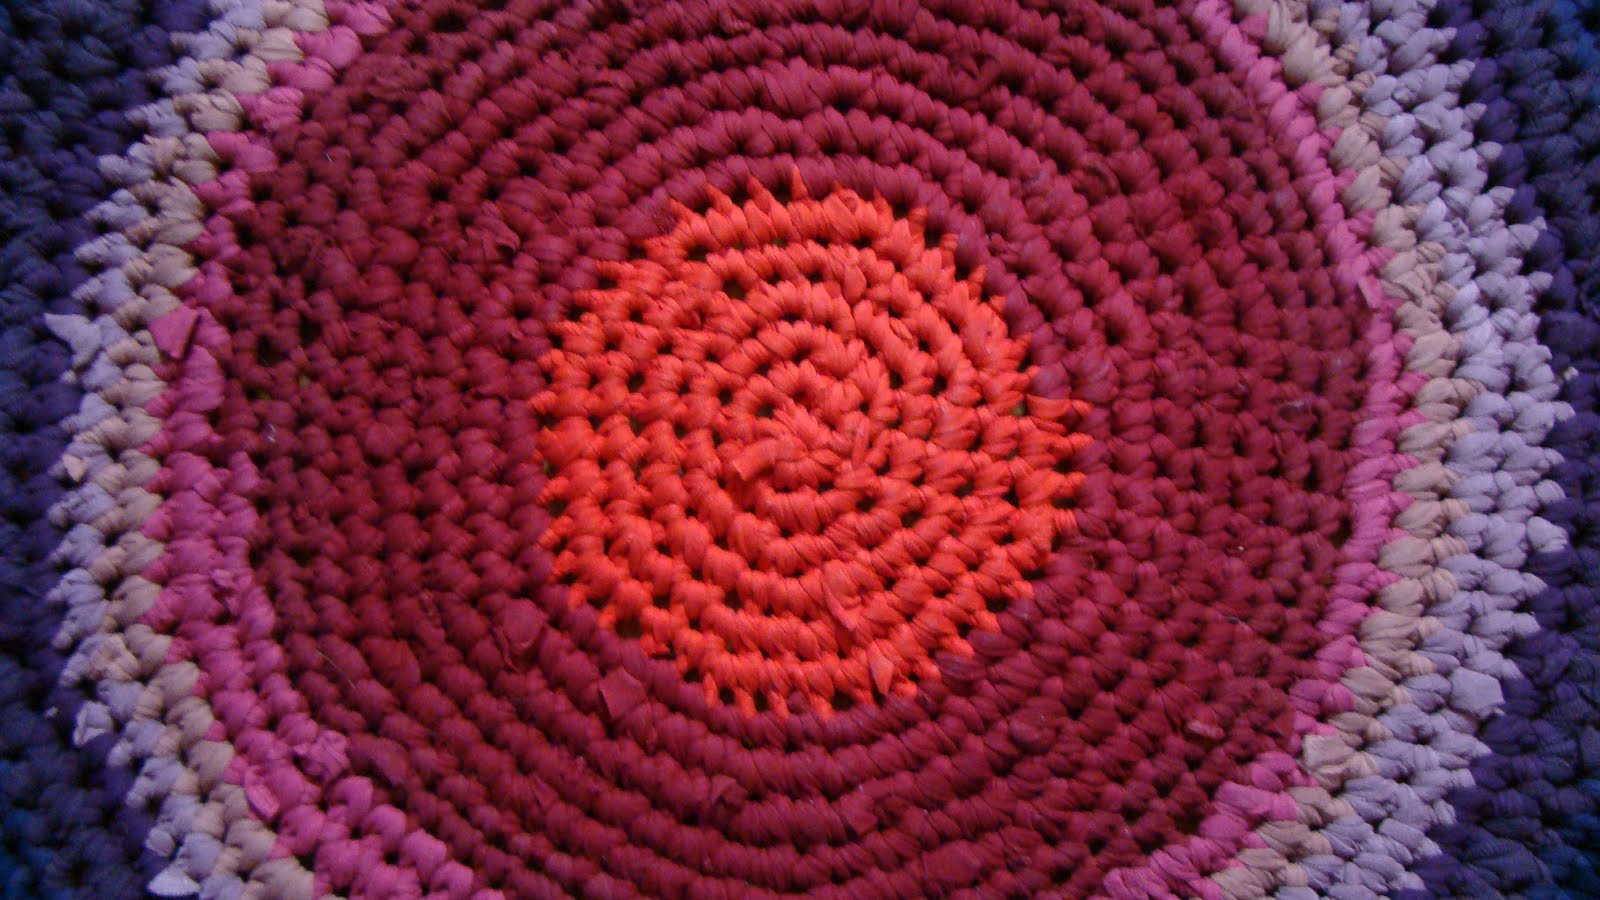 Crocheting Rugs : Crocheted Rug!